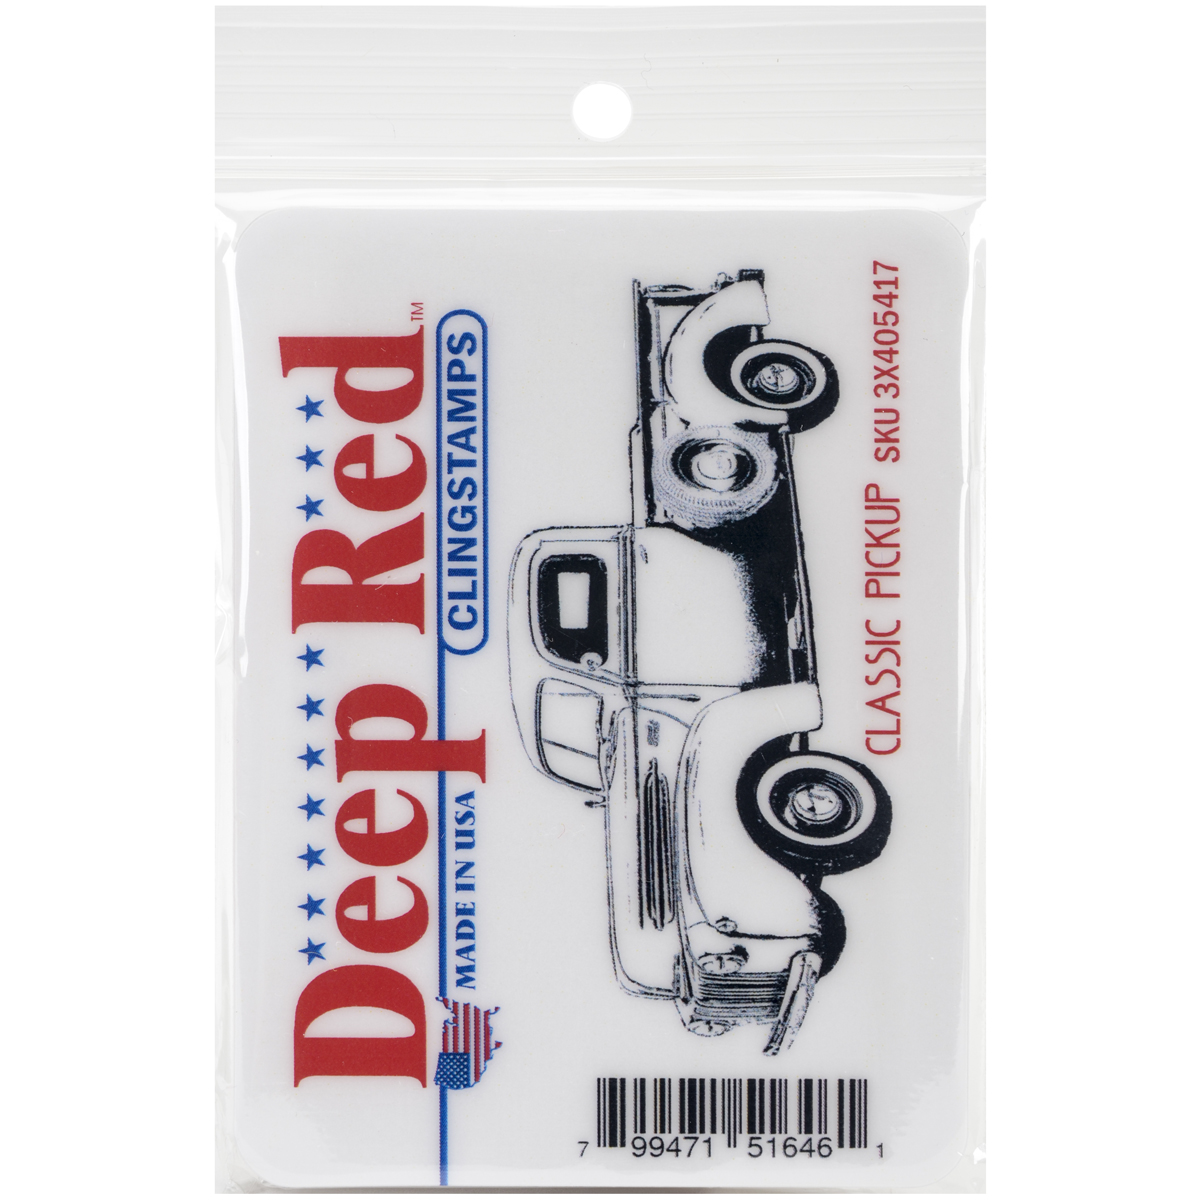 Classic Pickup Truck Deep Red Stamps Deep Red 3 by 1.25 Cling Stamp 3x1.25